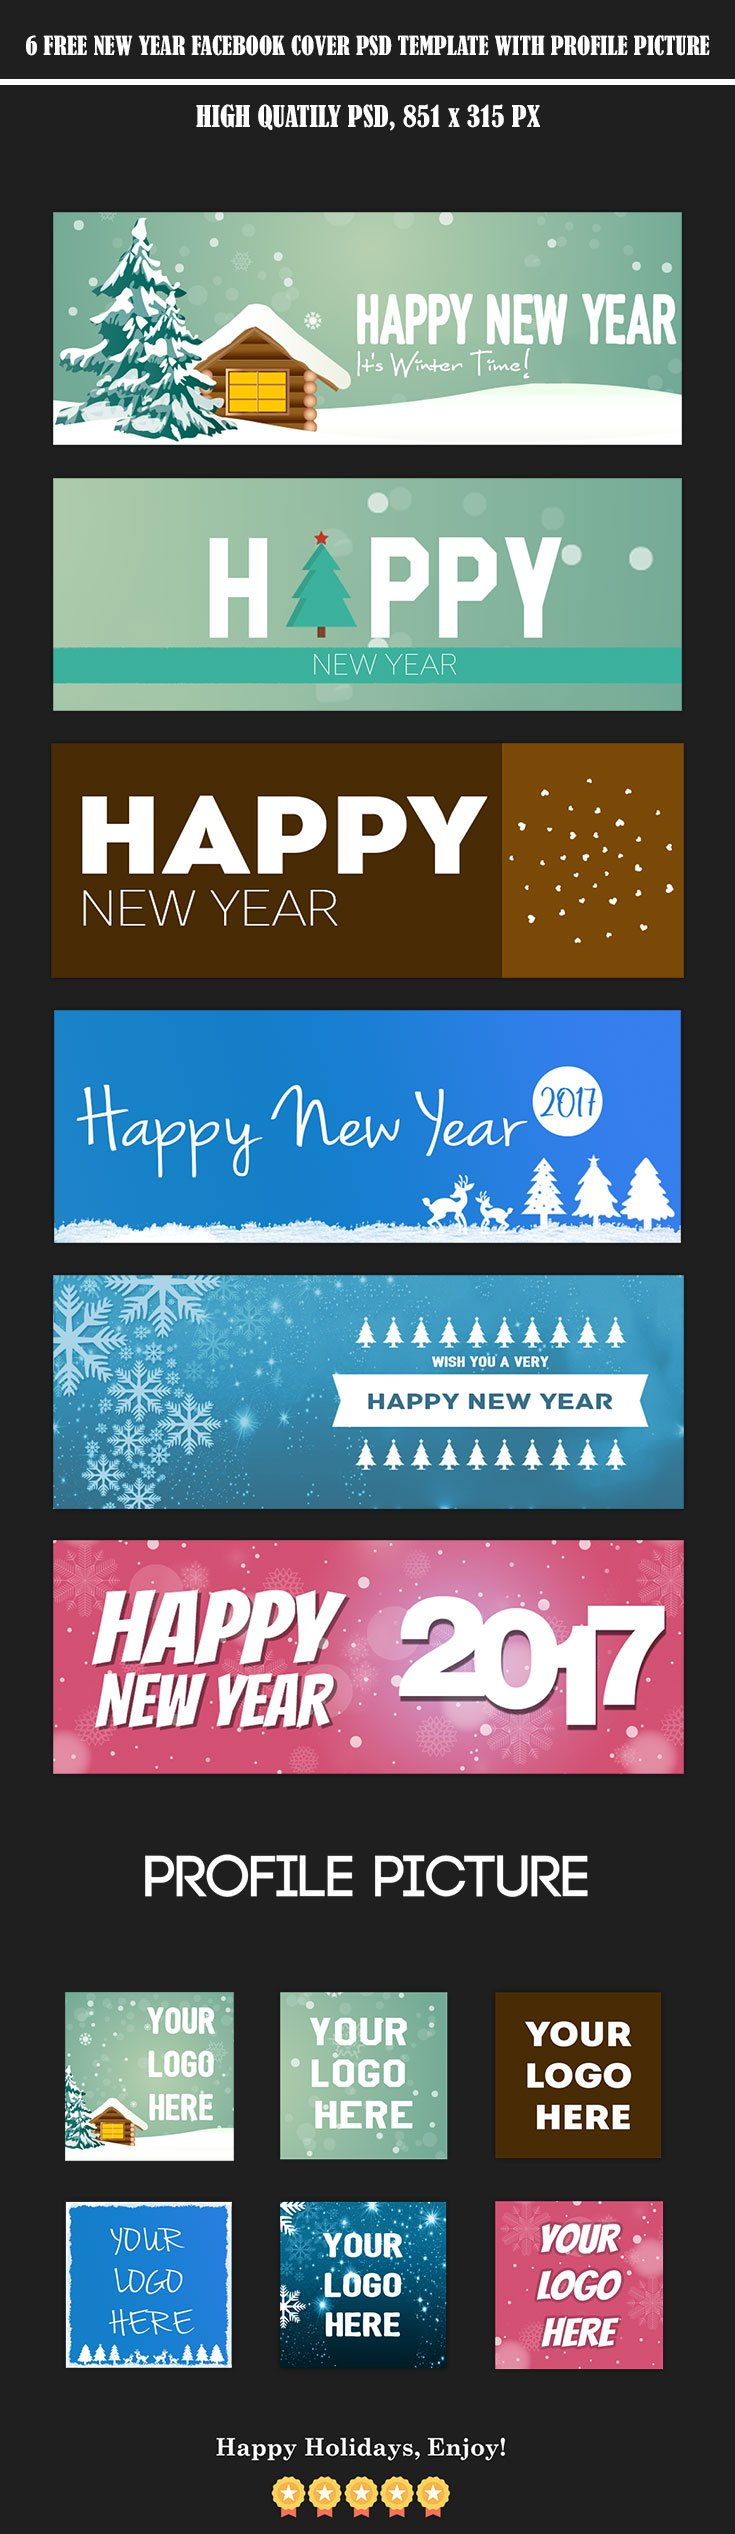 6 Free New Year Facebook Cover Template